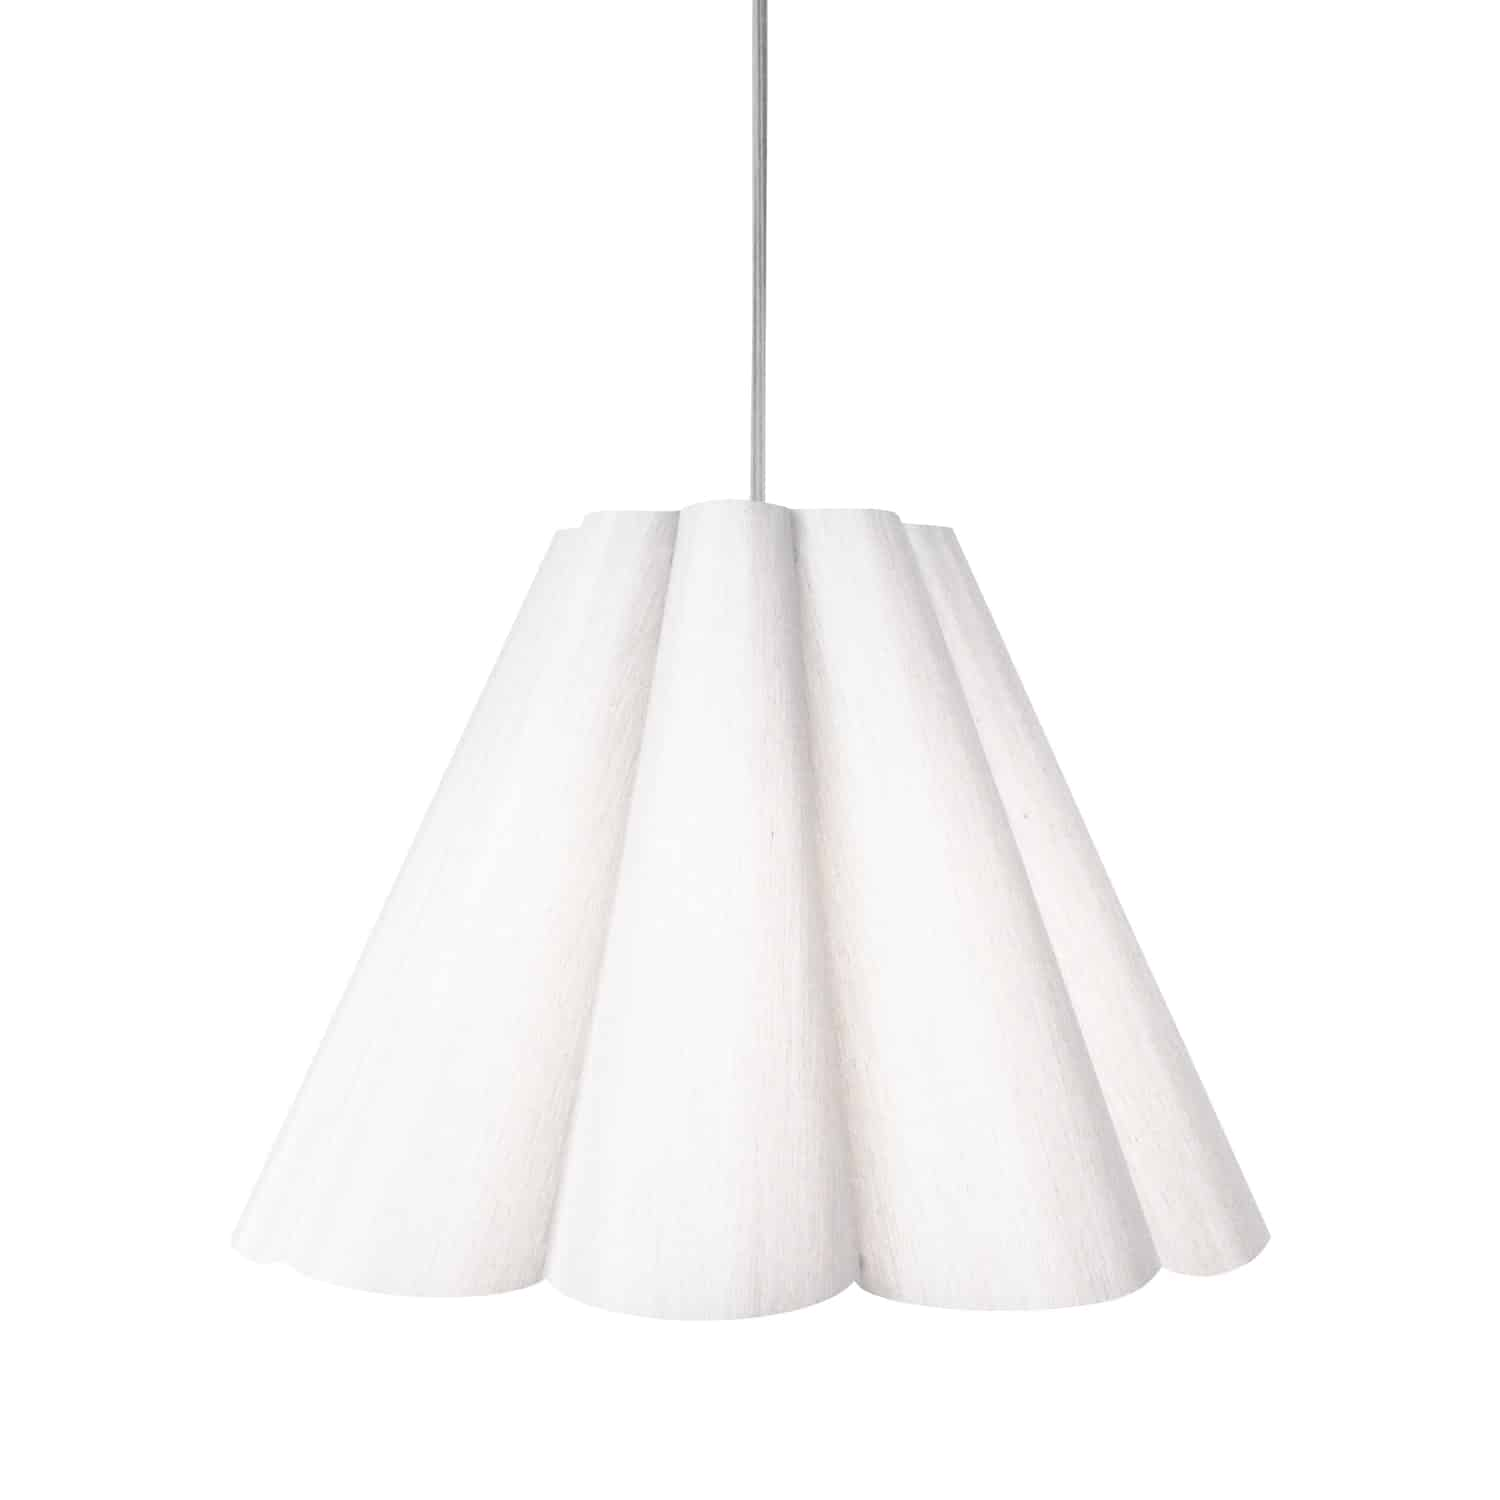 4 Light Kendra Pendant JTone White, Medium Polished Chrome